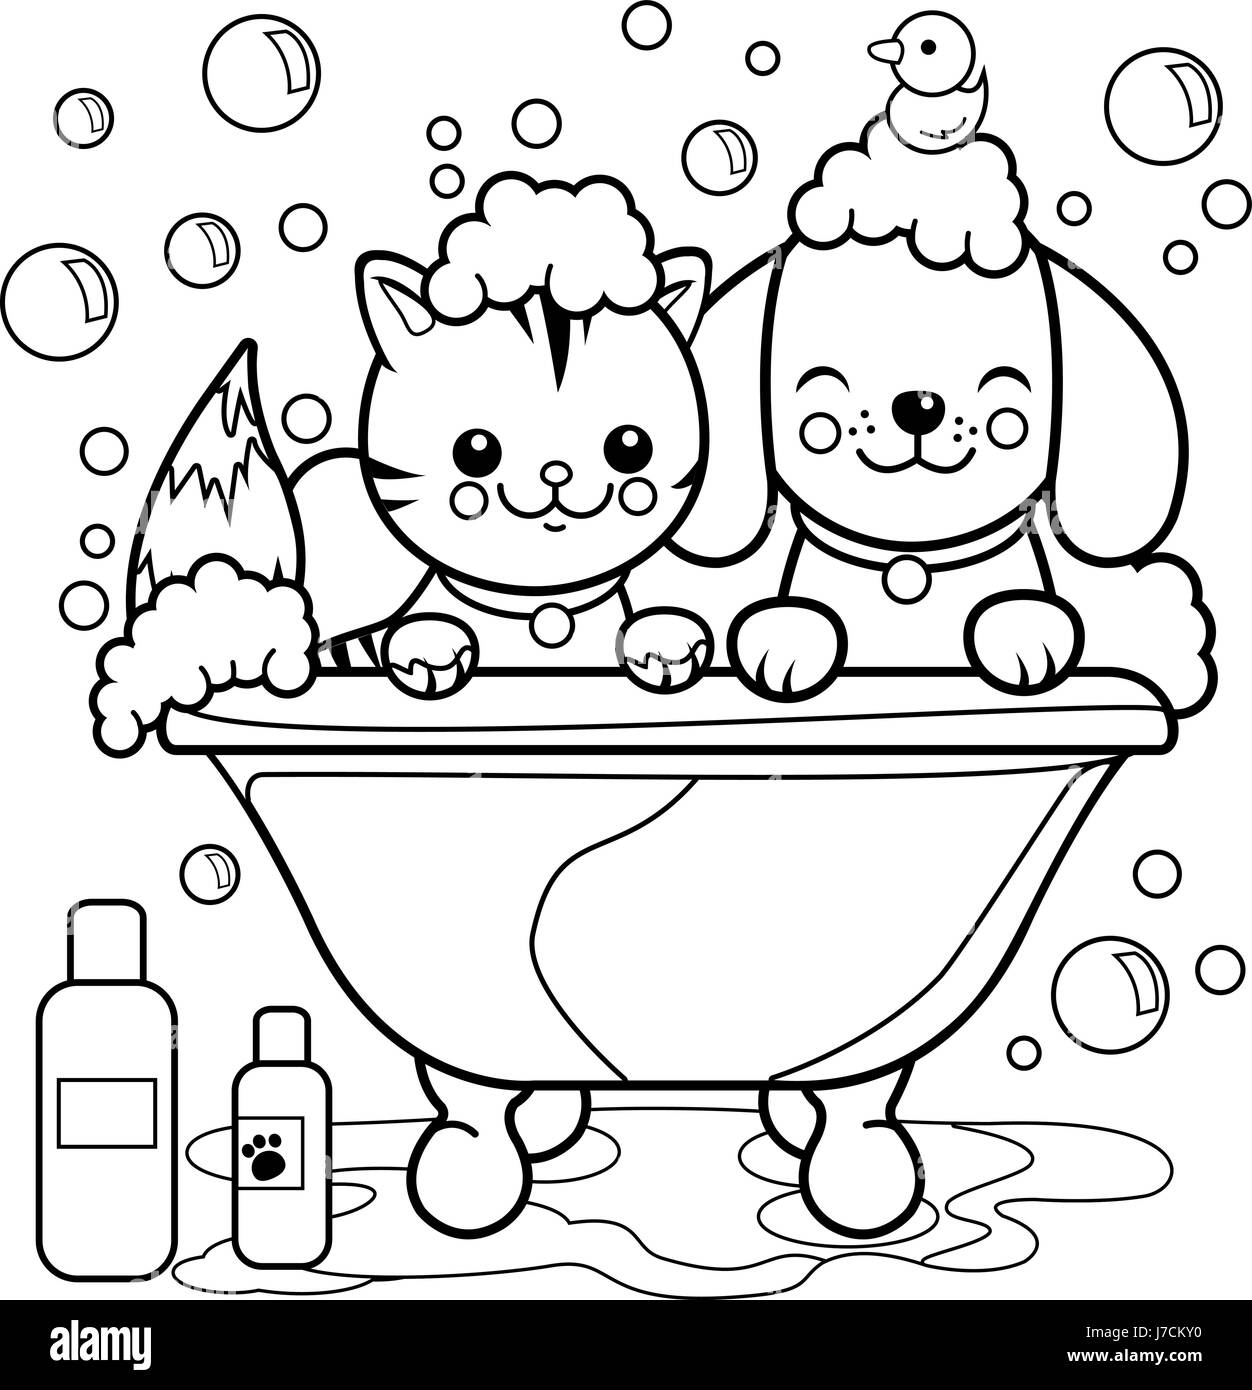 Dog and cat taking a bath. Coloring book page Stock Vector Art ...